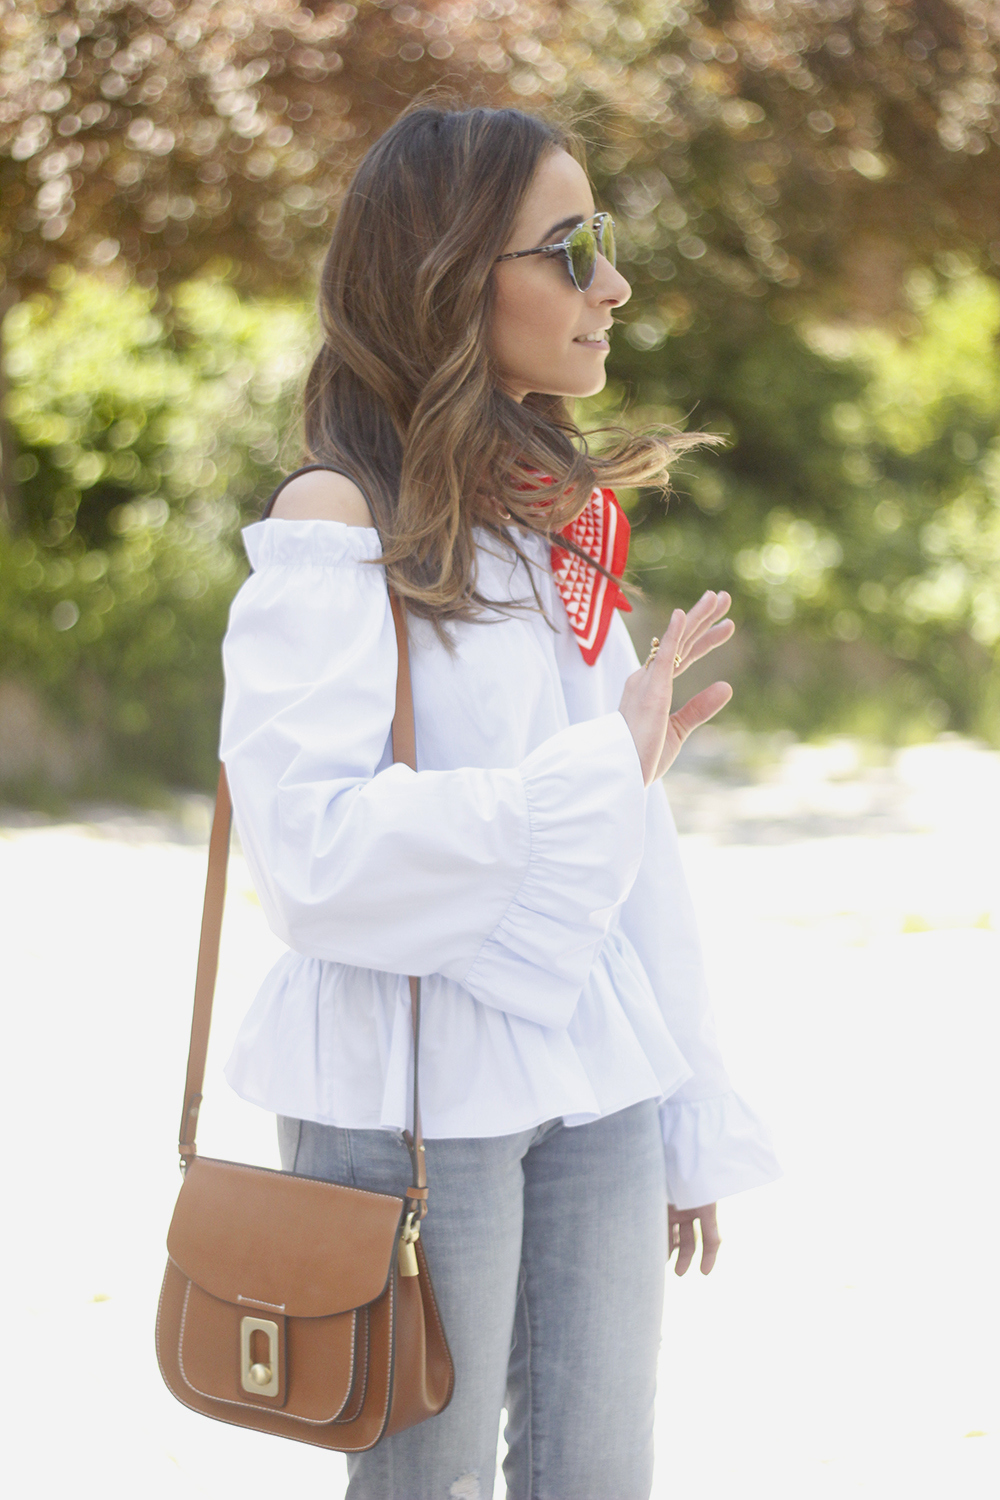 off the shoulders top with bell sleeves red bandana nude heels dior sunglasses spring outfit18